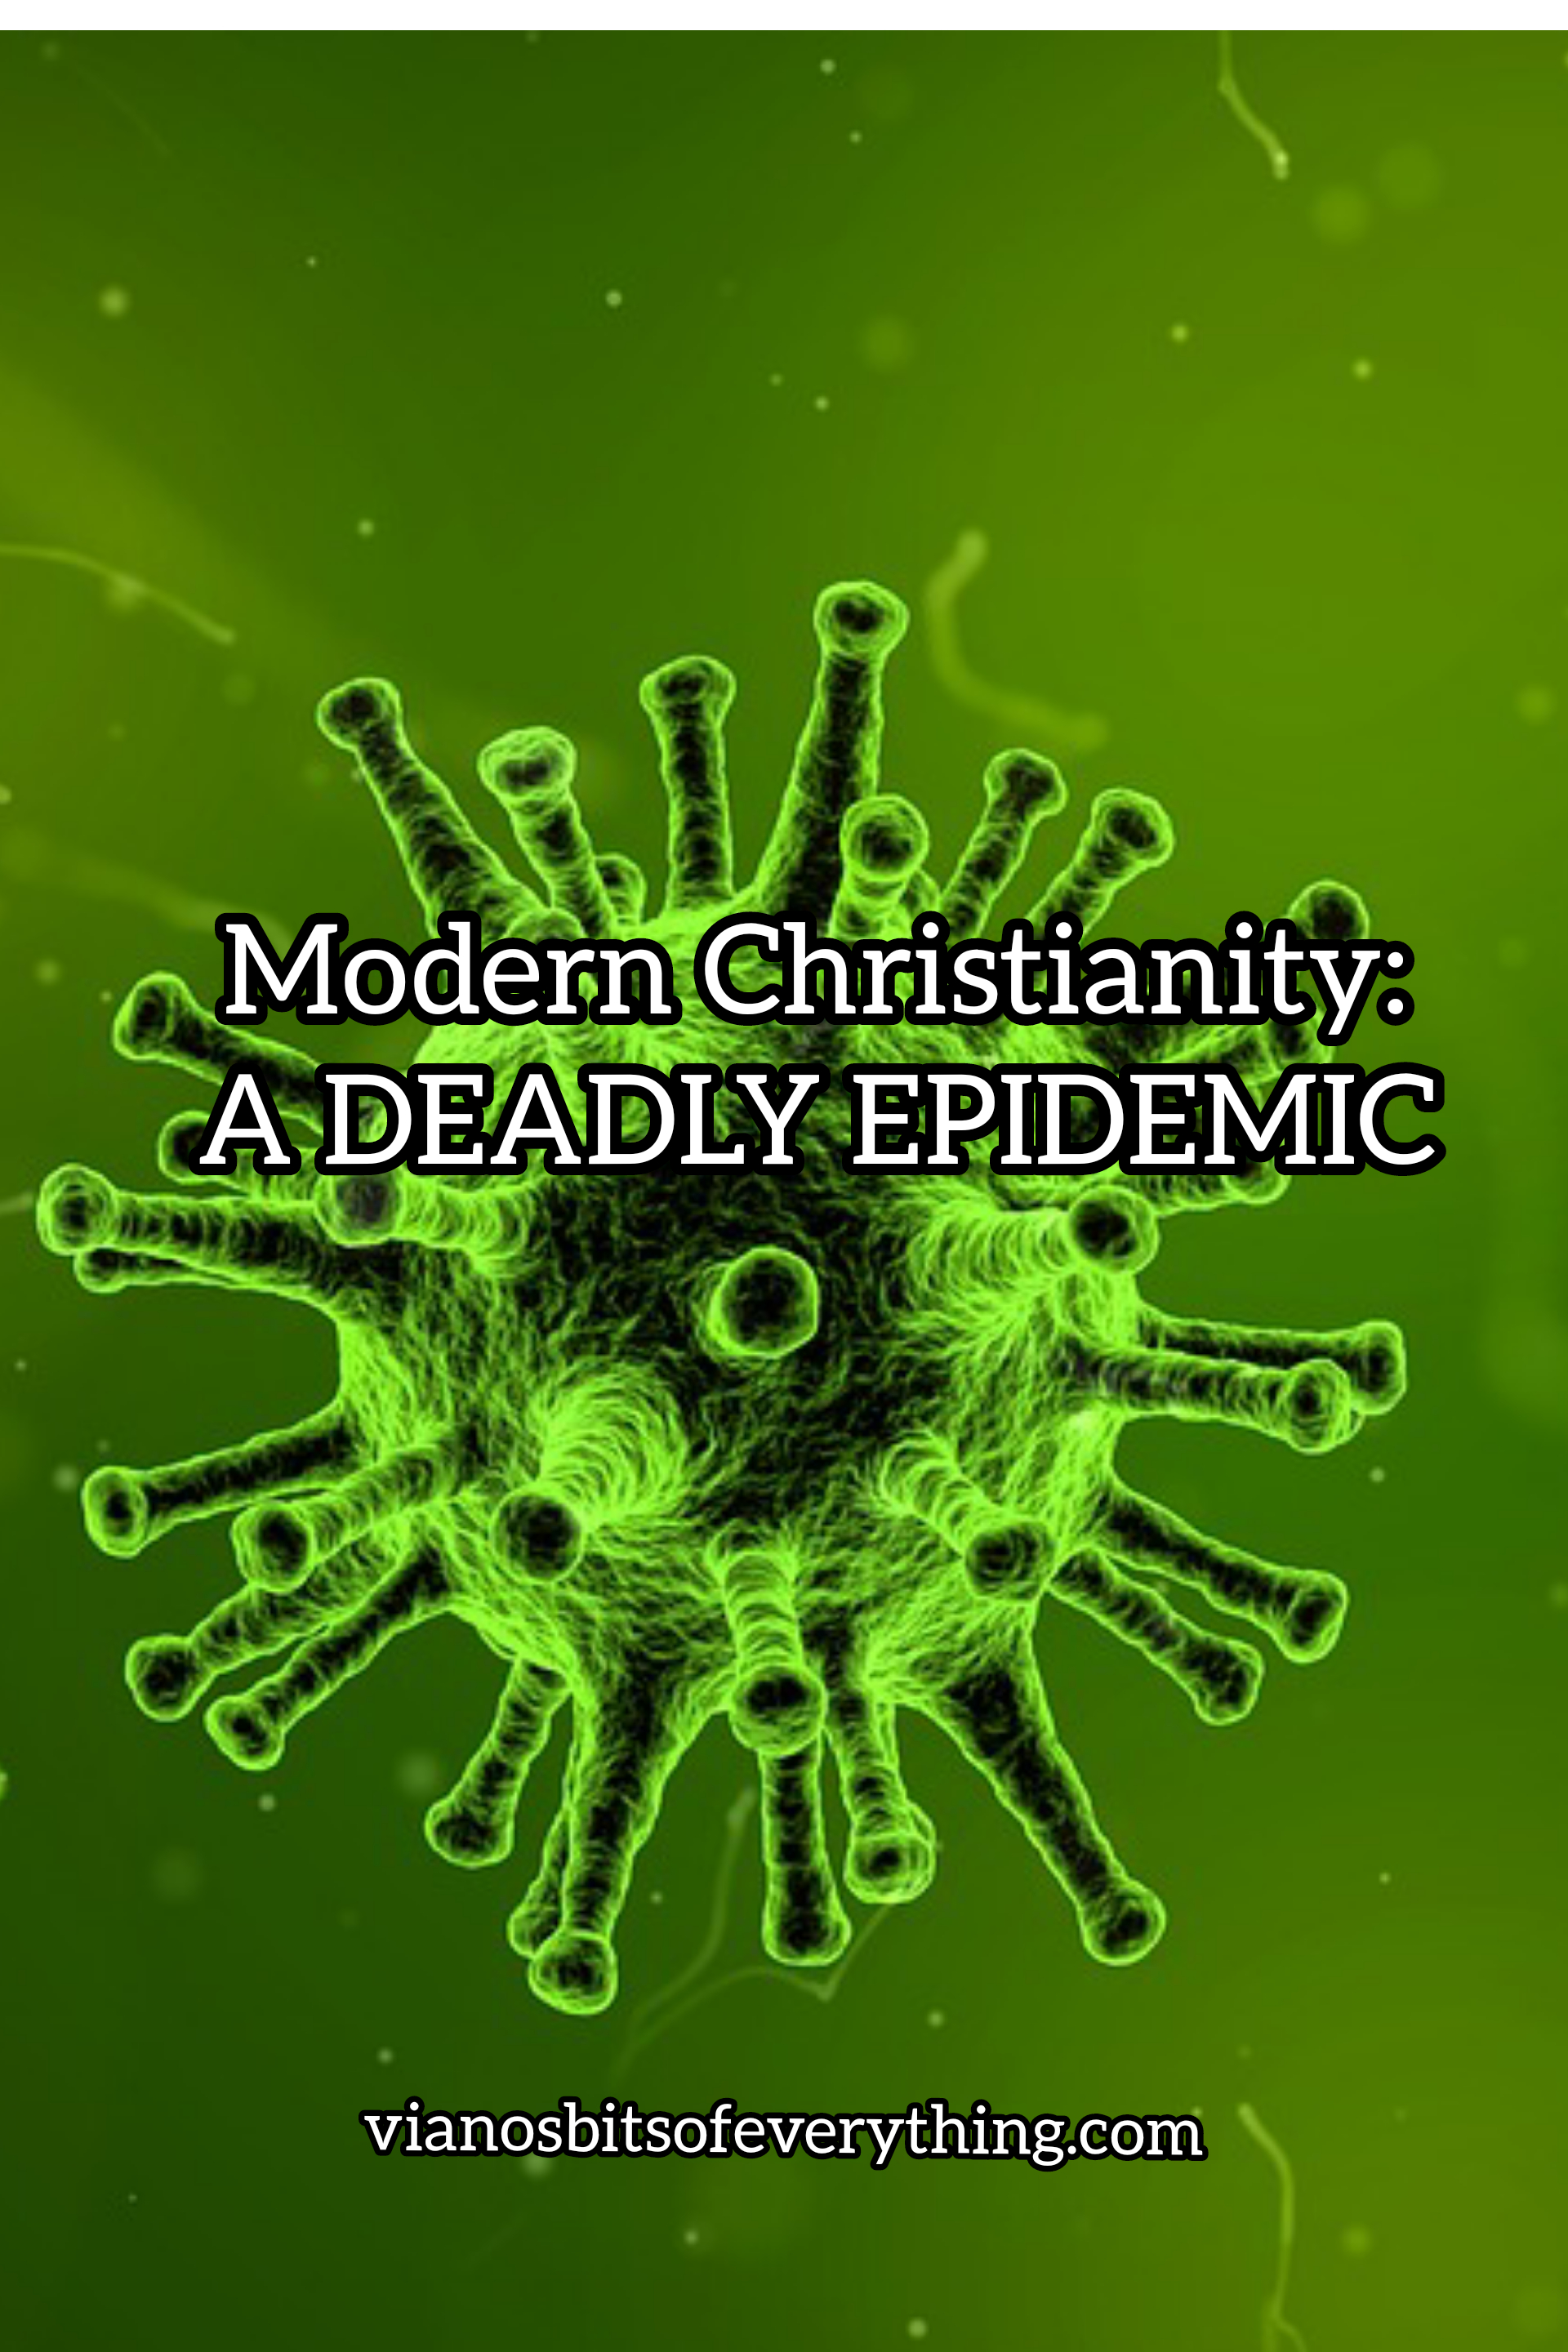 Modern Christianity: A Deadly Epidemic